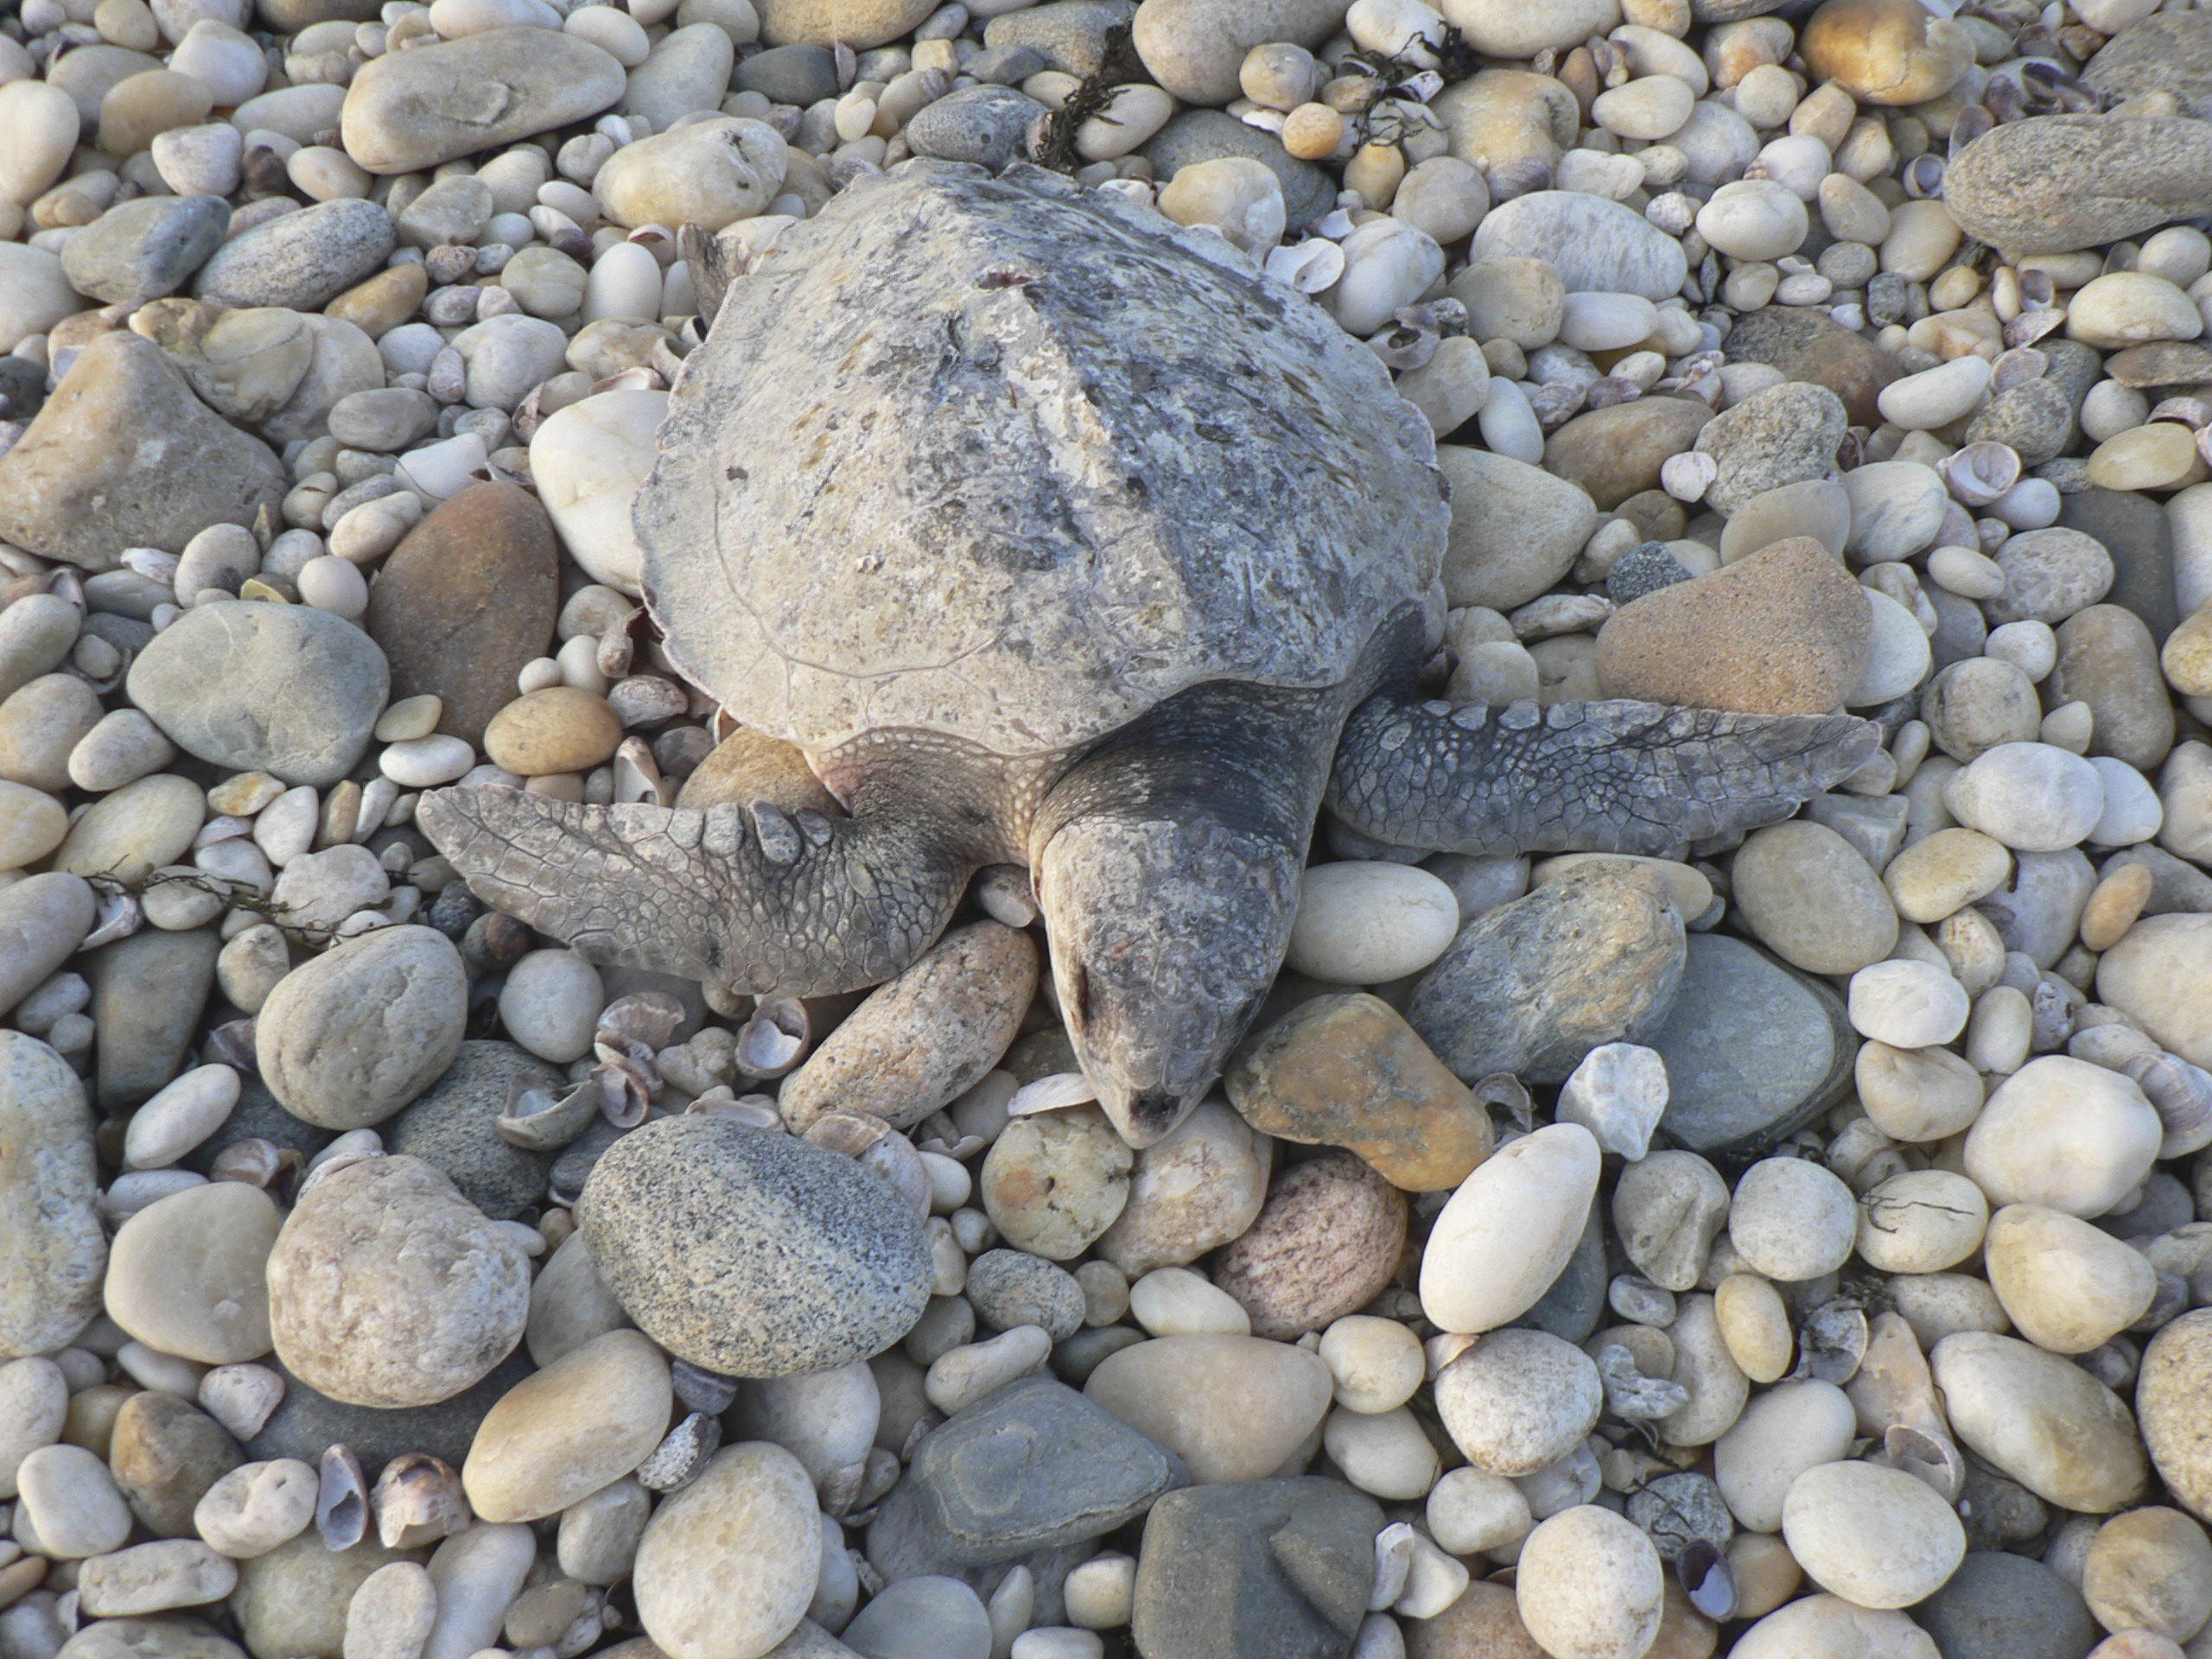 A cold-stunned sea turtle that didn't make it. JIM MONACO